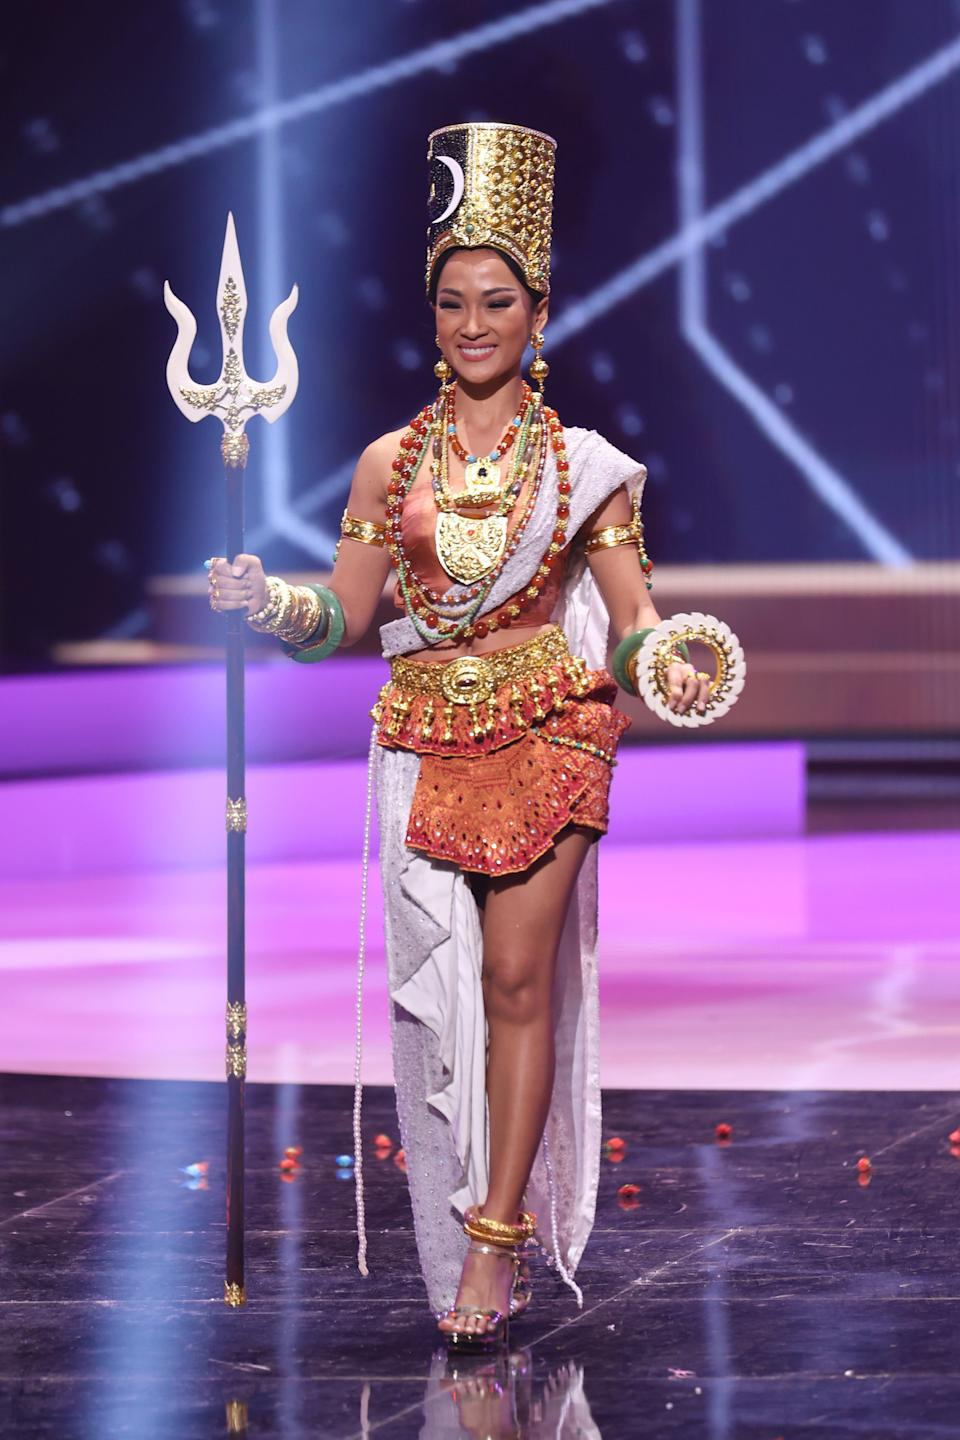 <p>Miss Cambodia Sarita Reth appears onstage at the Miss Universe 2021 - National Costume Show at Seminole Hard Rock Hotel & Casino on May 13, 2021 in Hollywood, Florida. (Photo by Rodrigo Varela/Getty Images)</p>